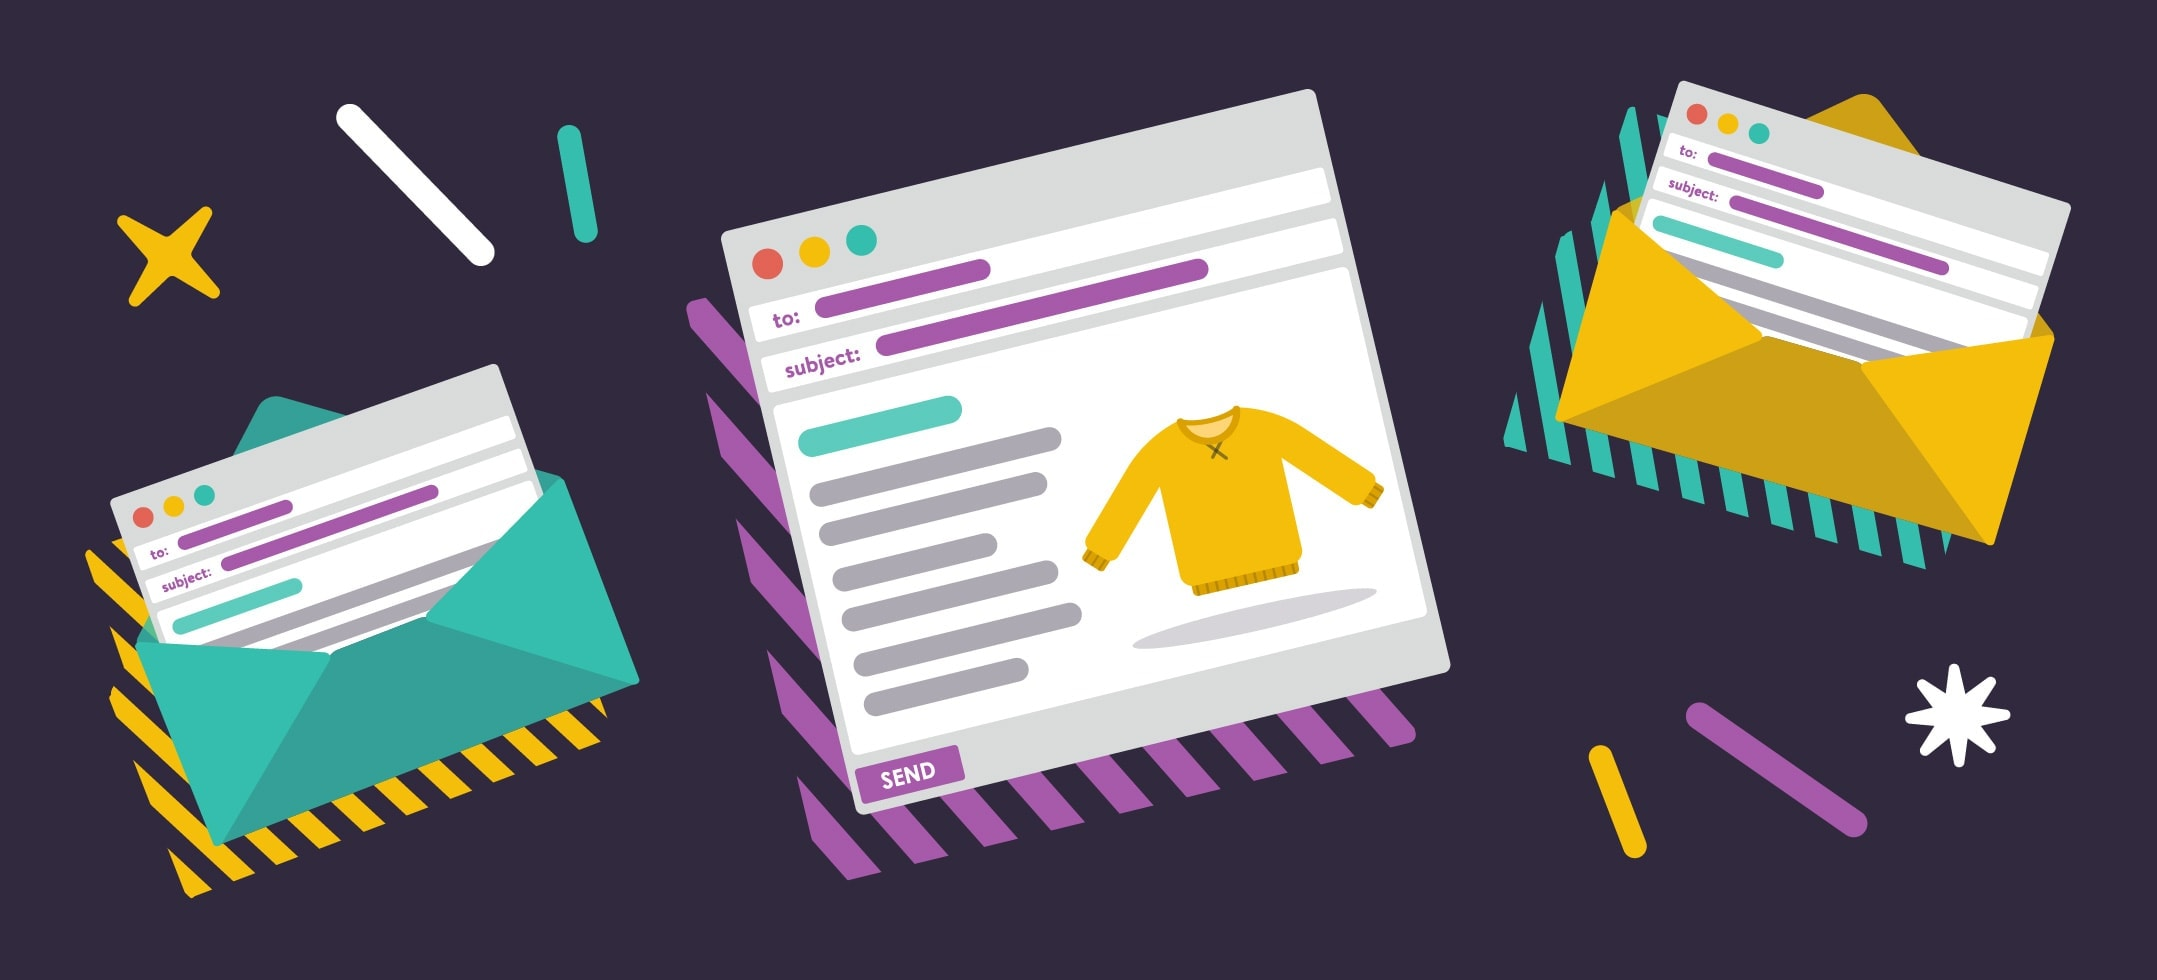 Ecommerce Welcome Email Ideas